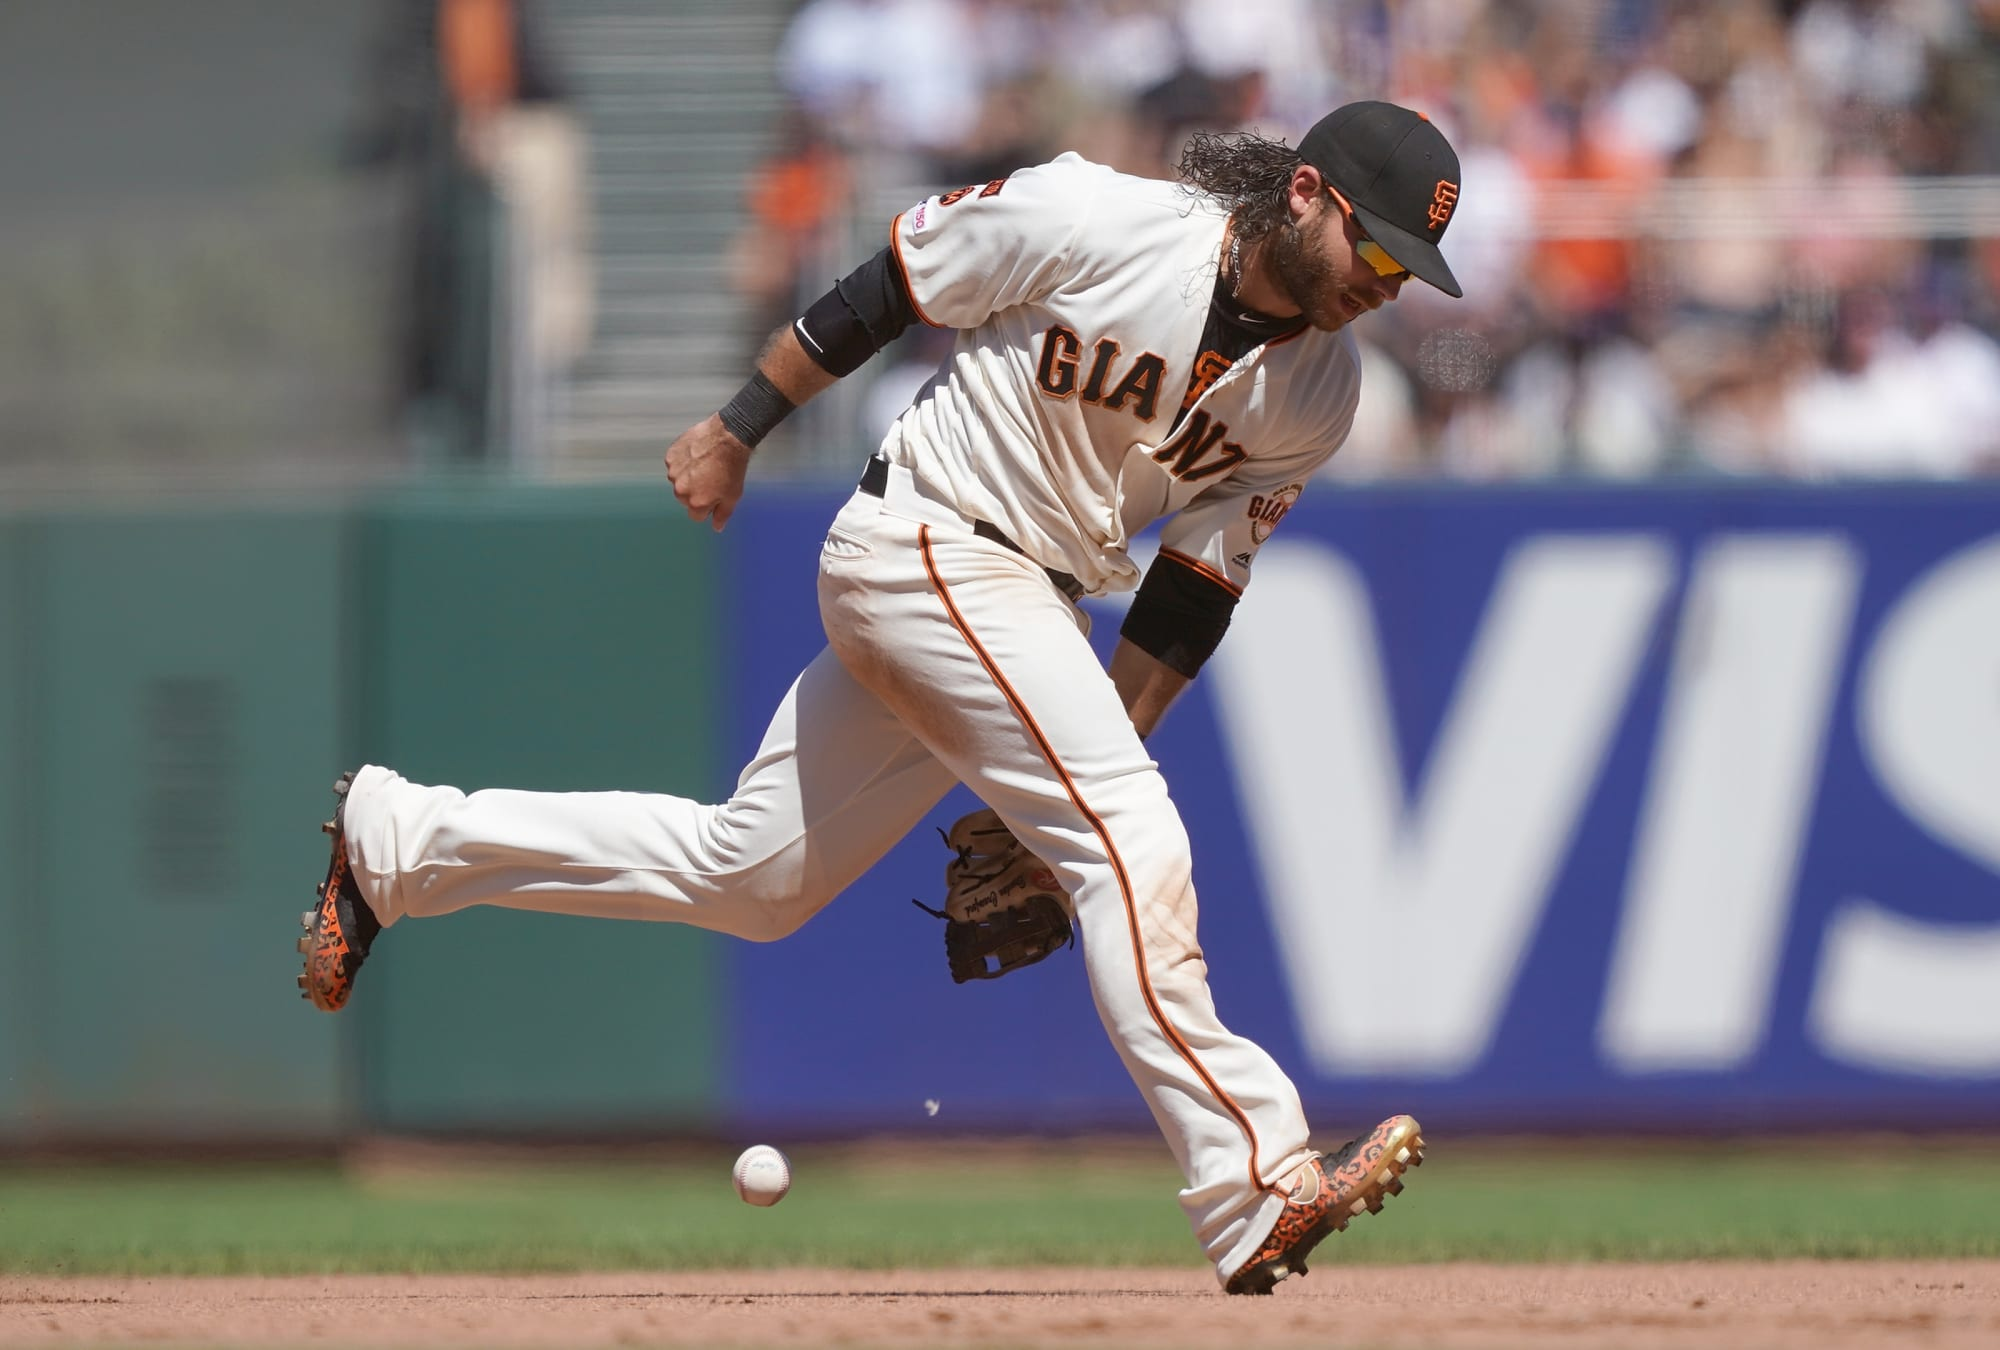 SF Giants: Why is defense such a big problem in 2020?